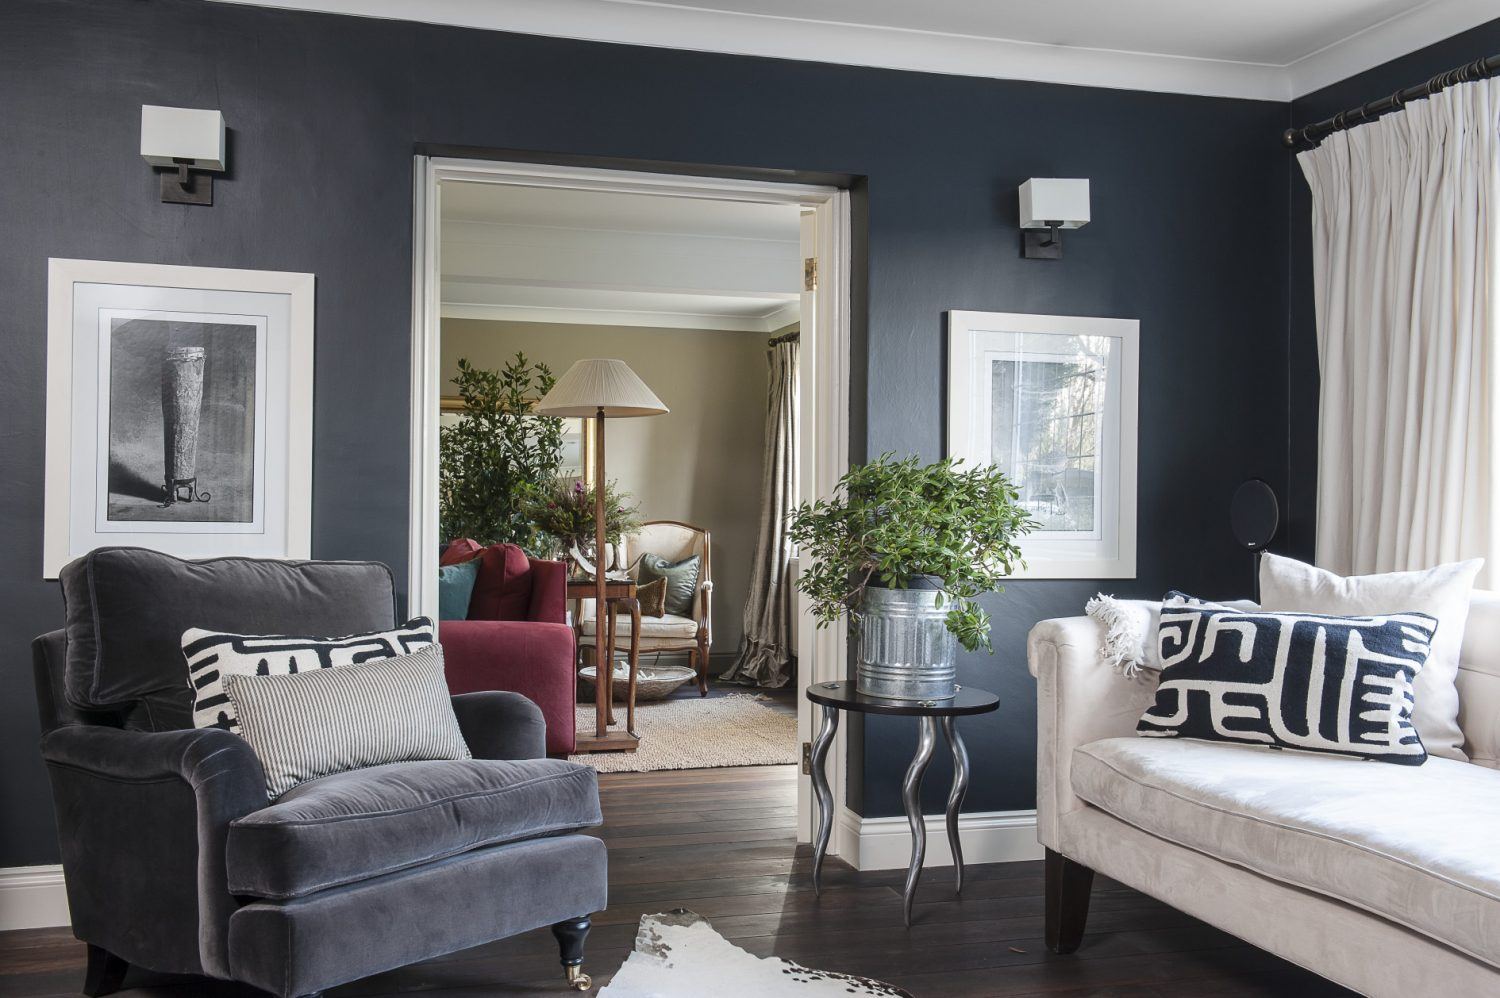 """The walls of the grown-ups' snug, painted in Farrow & Ball 'Off Black', creates an inviting and cosy evening retreat. """"I often think darker colours are more neutral than white,"""" says Adele. """"They often make spaces look larger rather than smaller and add depth and warmth."""" The sofa is flanked by two superb tables with brushed aluminium legs in the shape of kudu horns"""